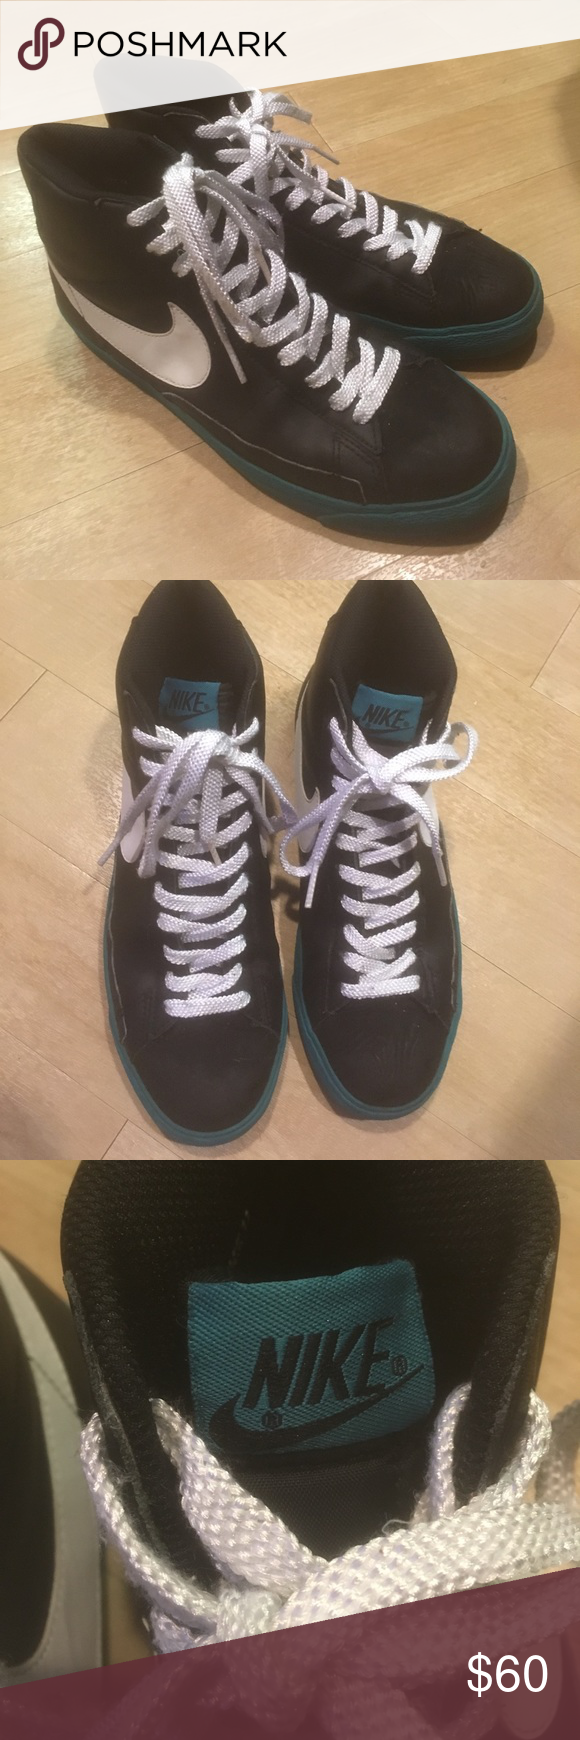 promo code 9bd28 e2d1b Nike Blazer High Top Sneakers - Black Turquoise These are a rare pair of  Nike Blazers in the Black Freshwater colorway. Show some signs of  wear wrinkles.